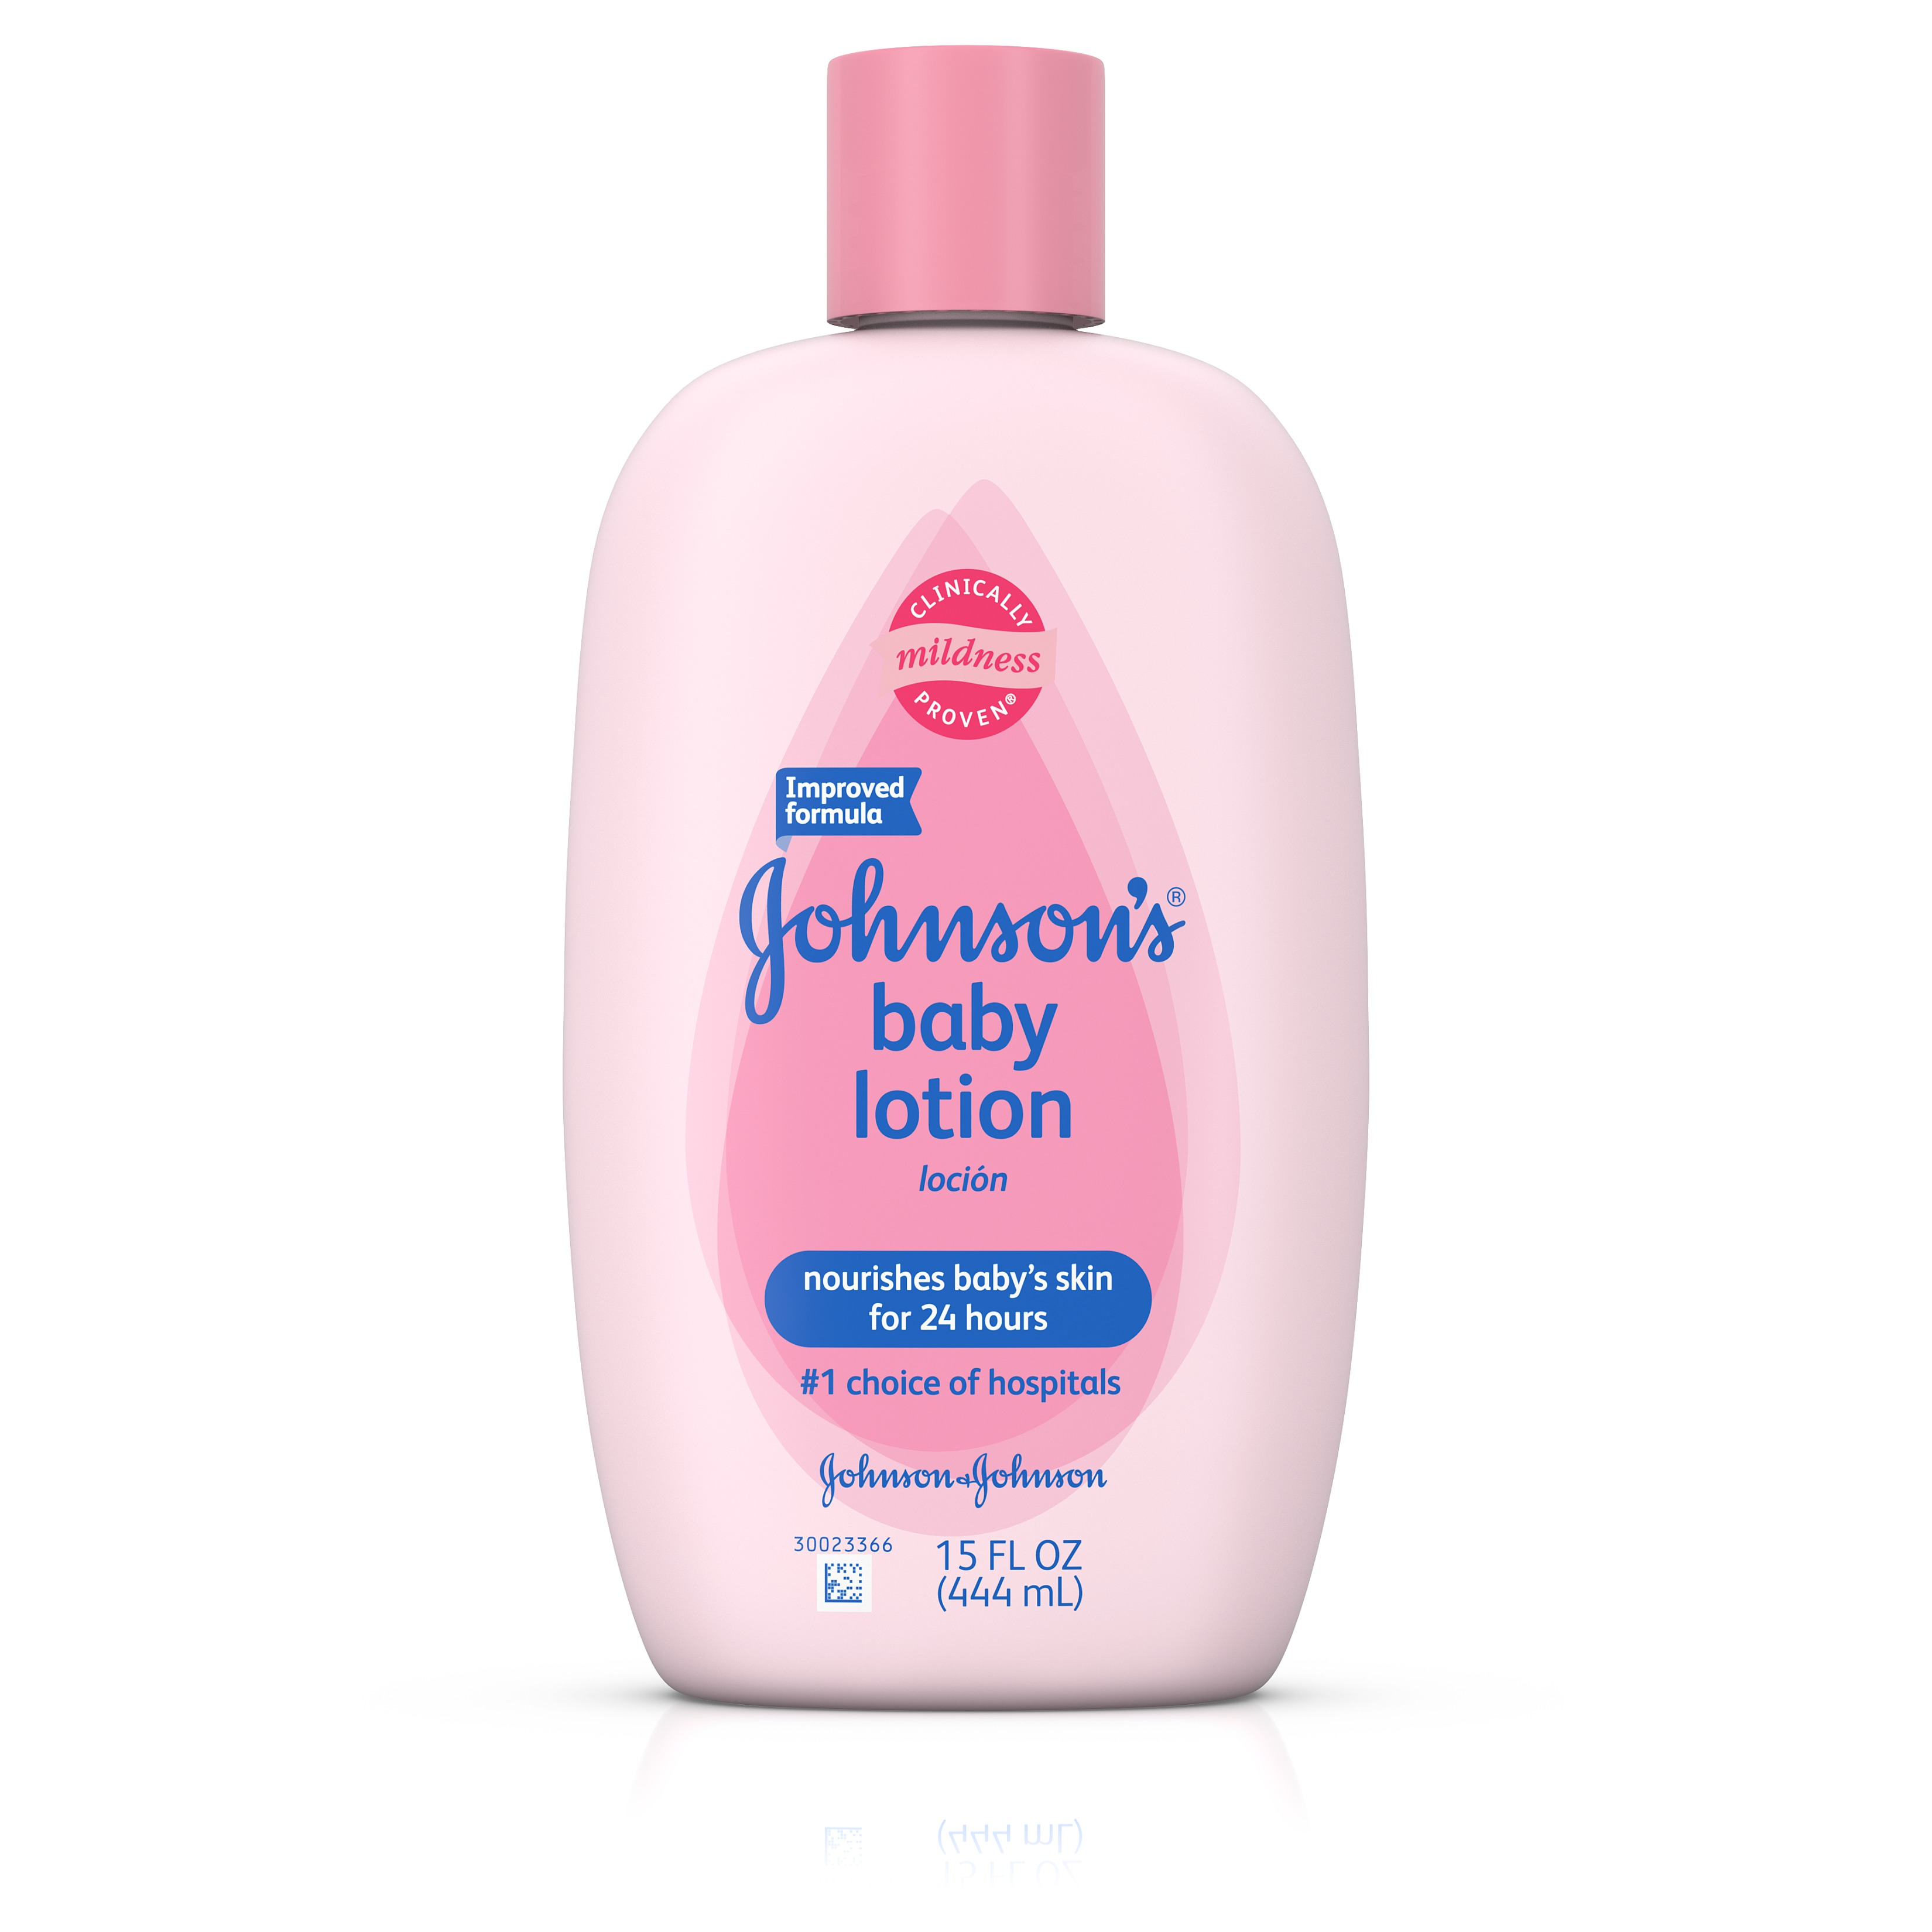 Johnson's Baby Lotion For Skin Hydration, 15 Fl. Oz.